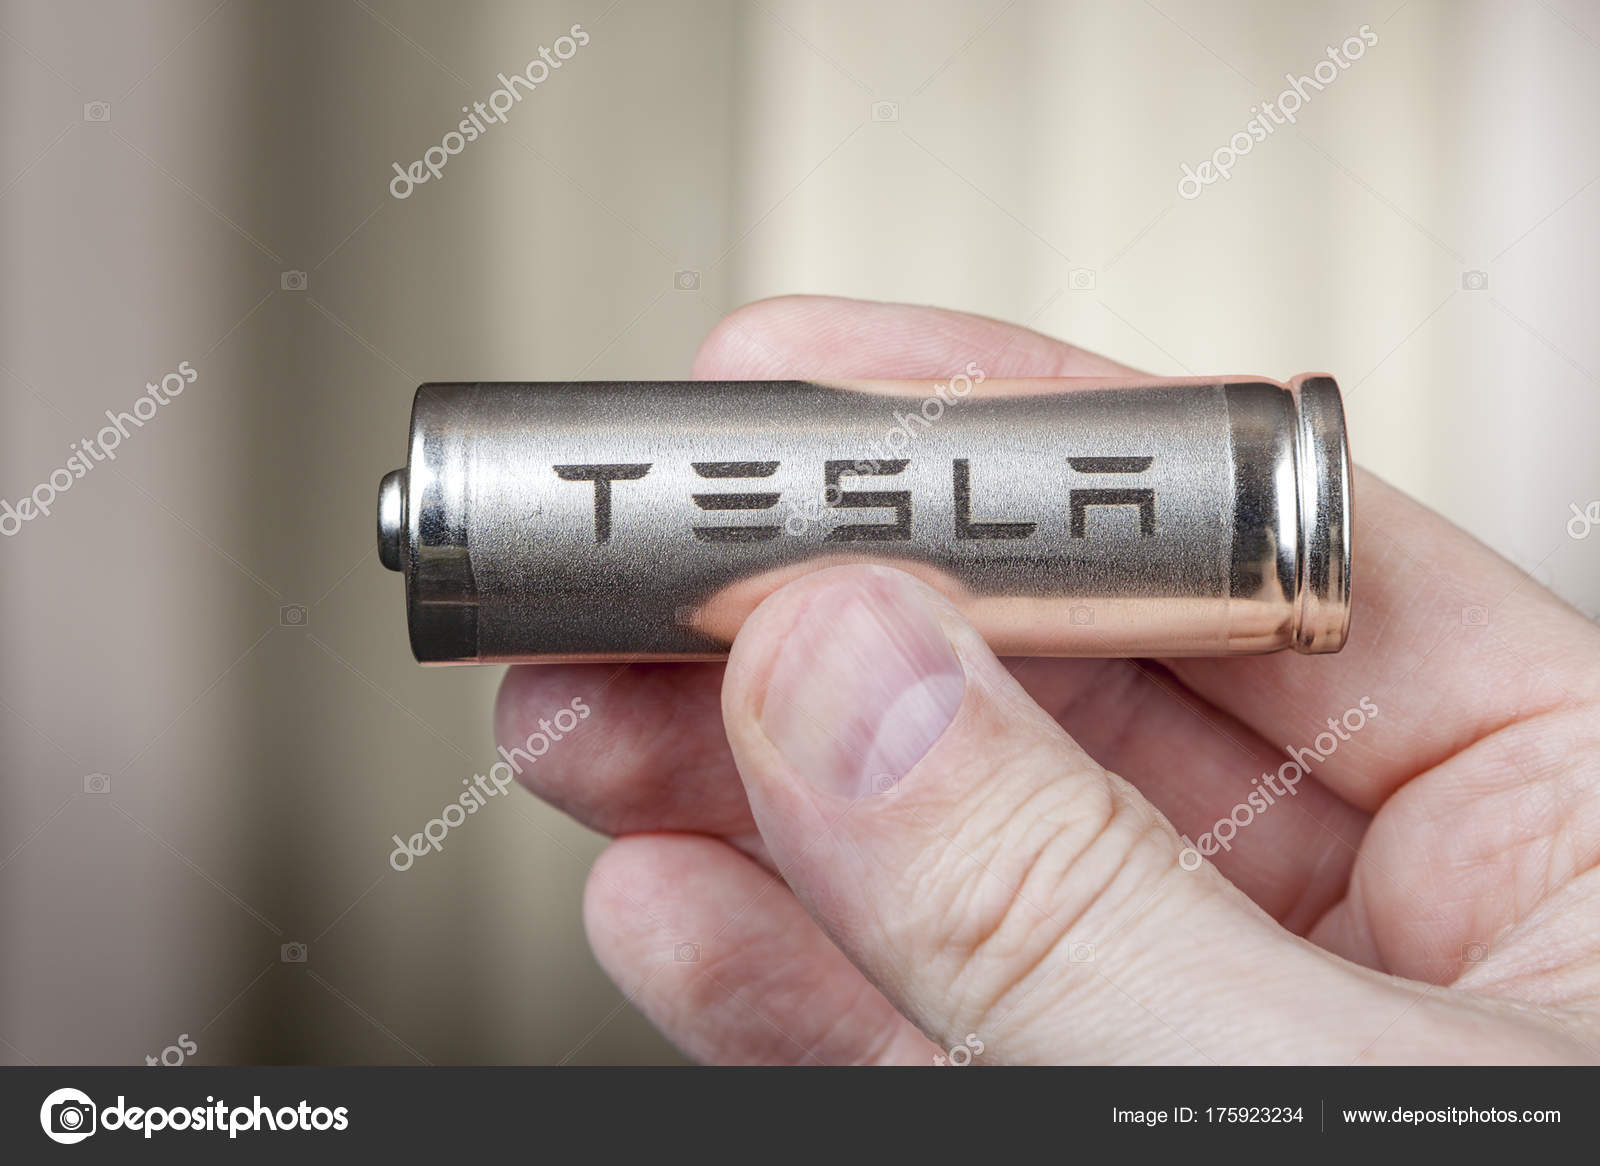 Tesla 2170 Battery lithium ion Cells pack, in human hand. — Stock Photo